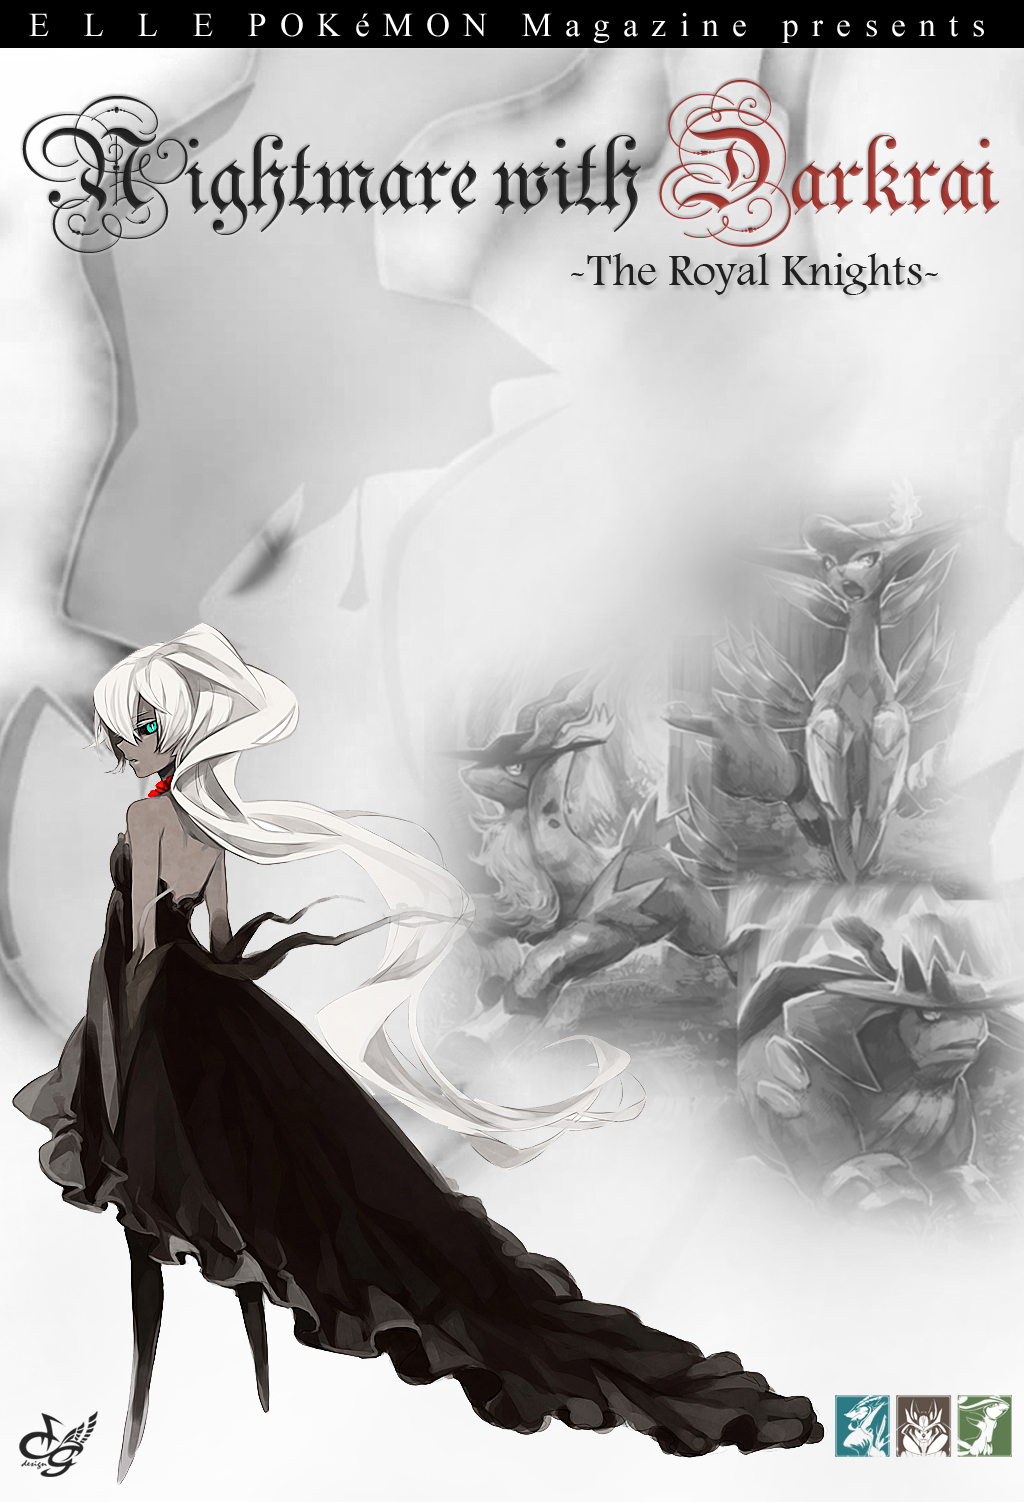 """Nightmare With Darkrai"" – The Royal Knights – : Truths"